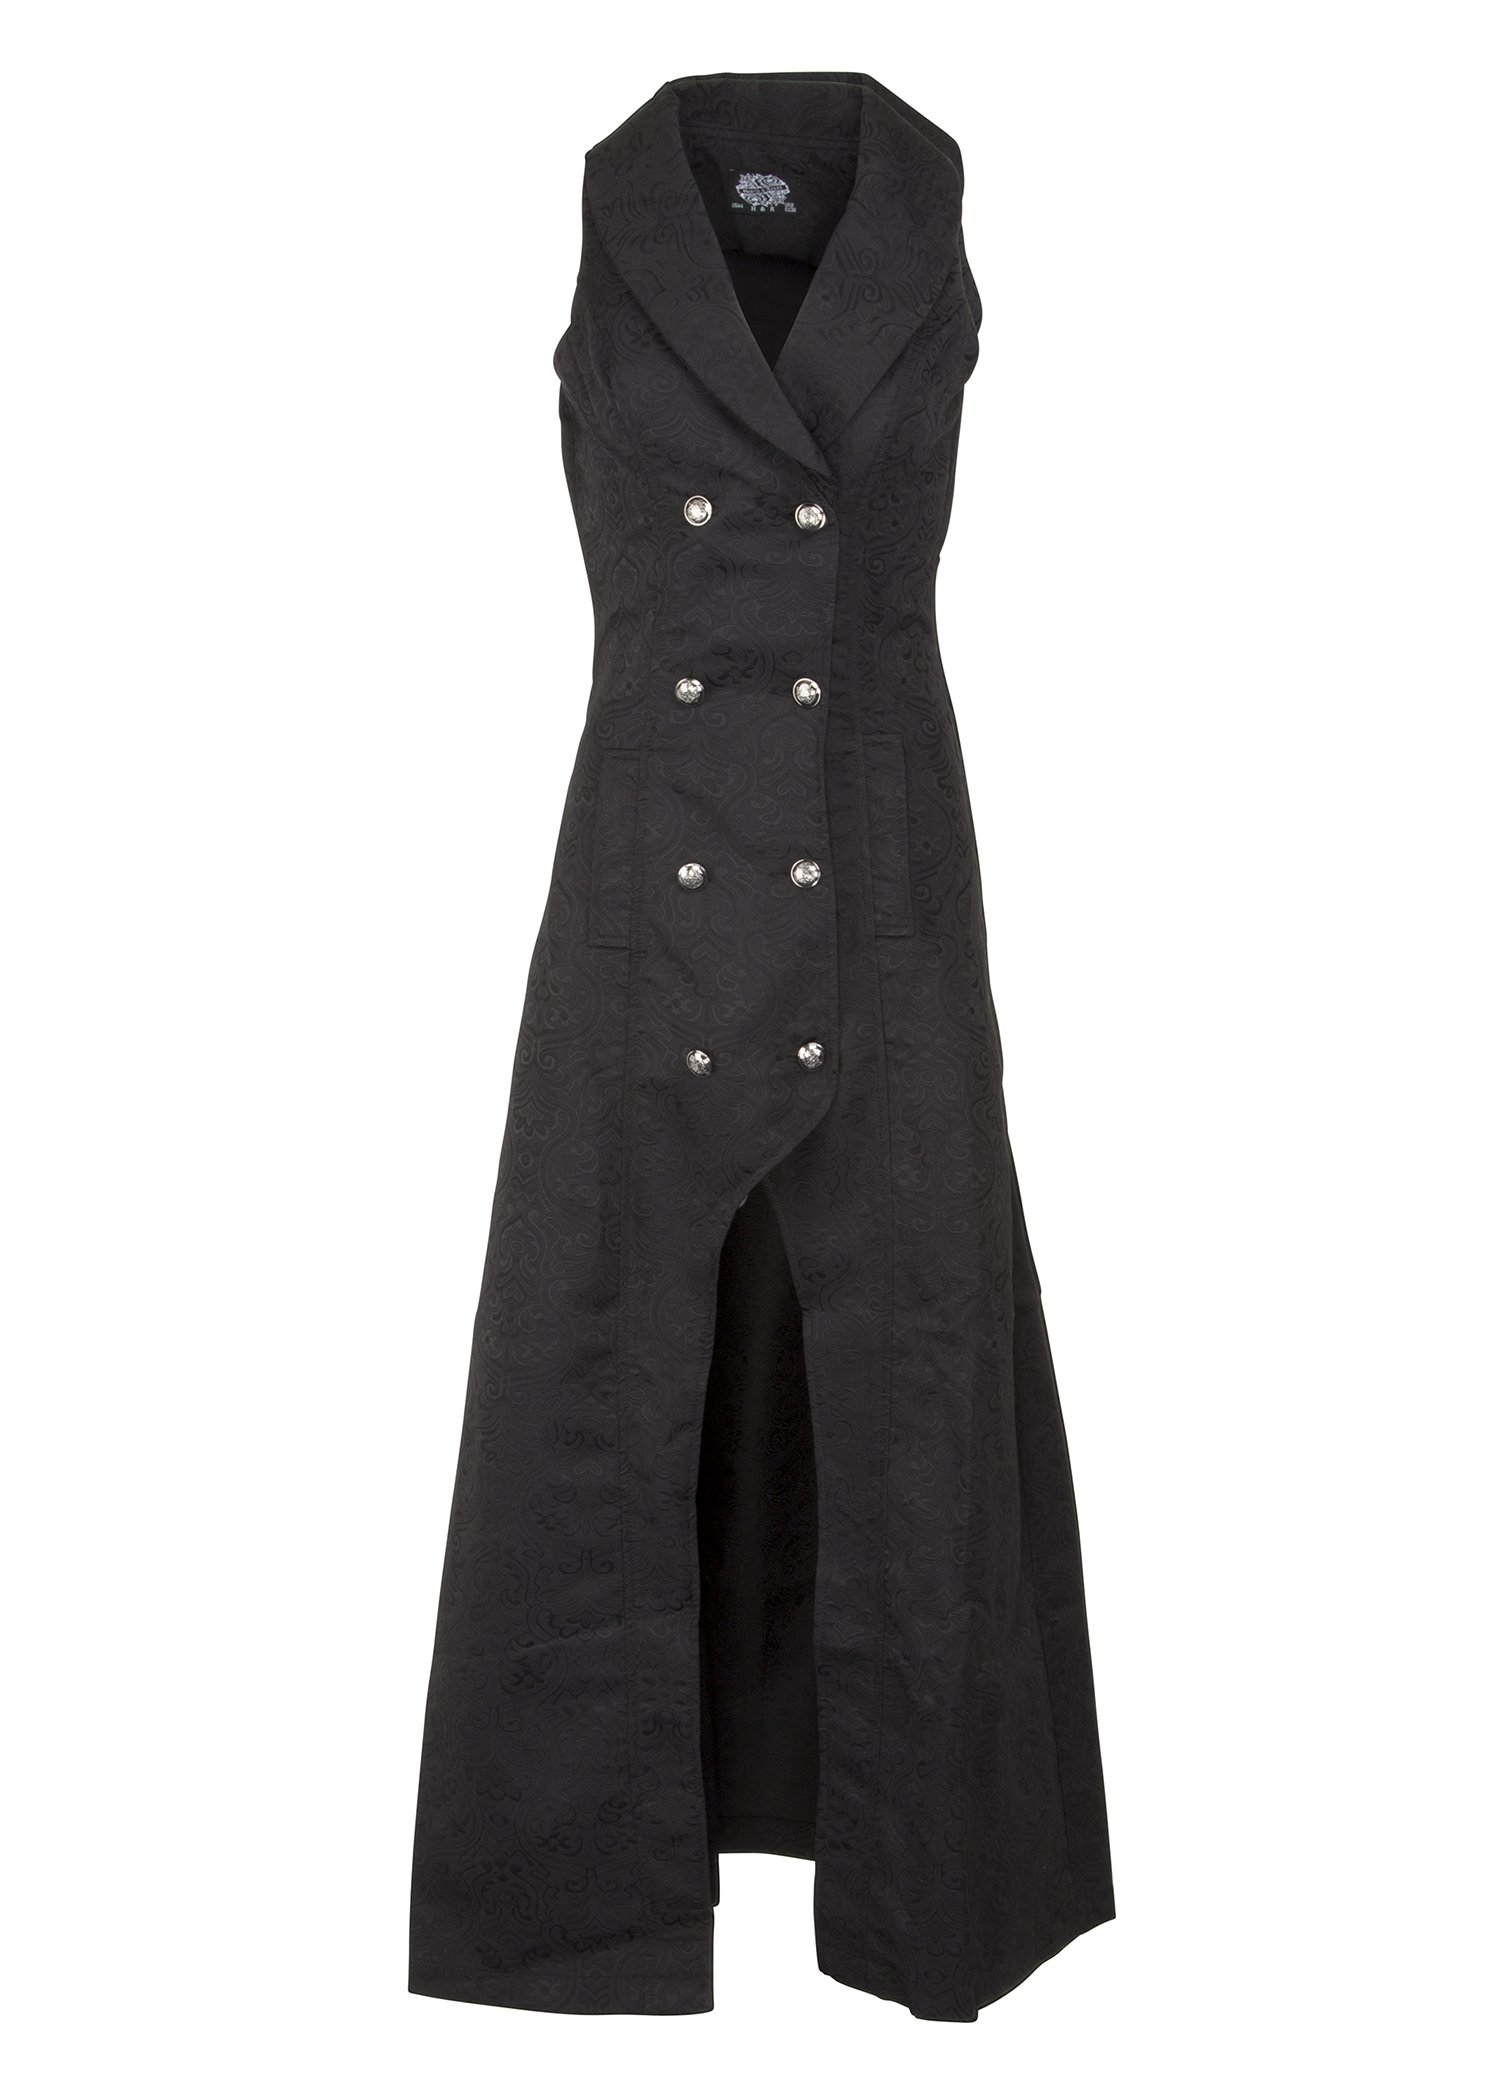 Womens Black Victorian Steampunk Gothic Sleeveless Coat Jacket 3